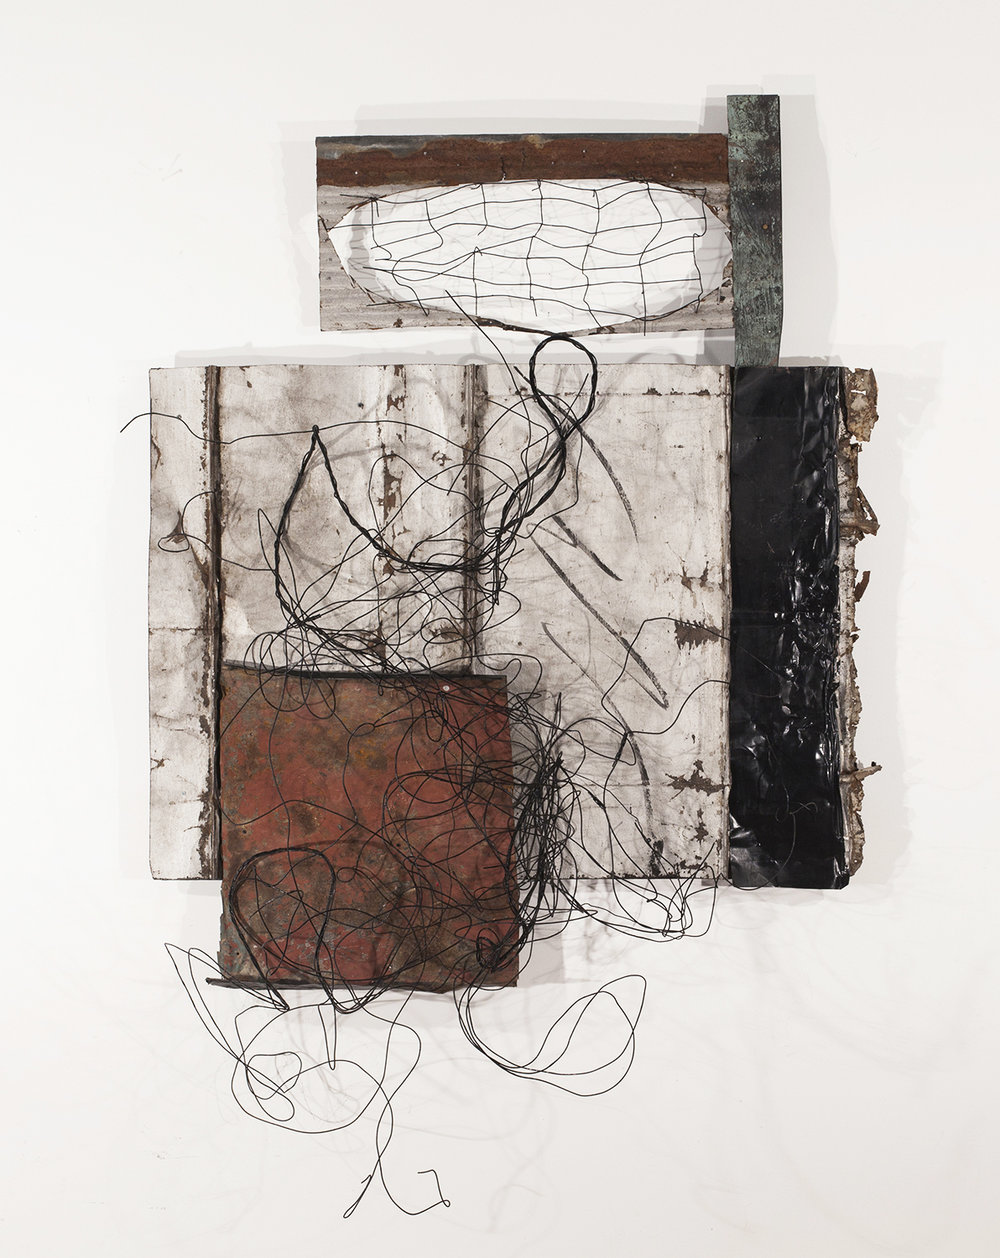 """#990: Three kinds of metal roofing - copper, corrugated, and steel, burned wire, metal fencing, 76""""x 50""""x 22"""""""